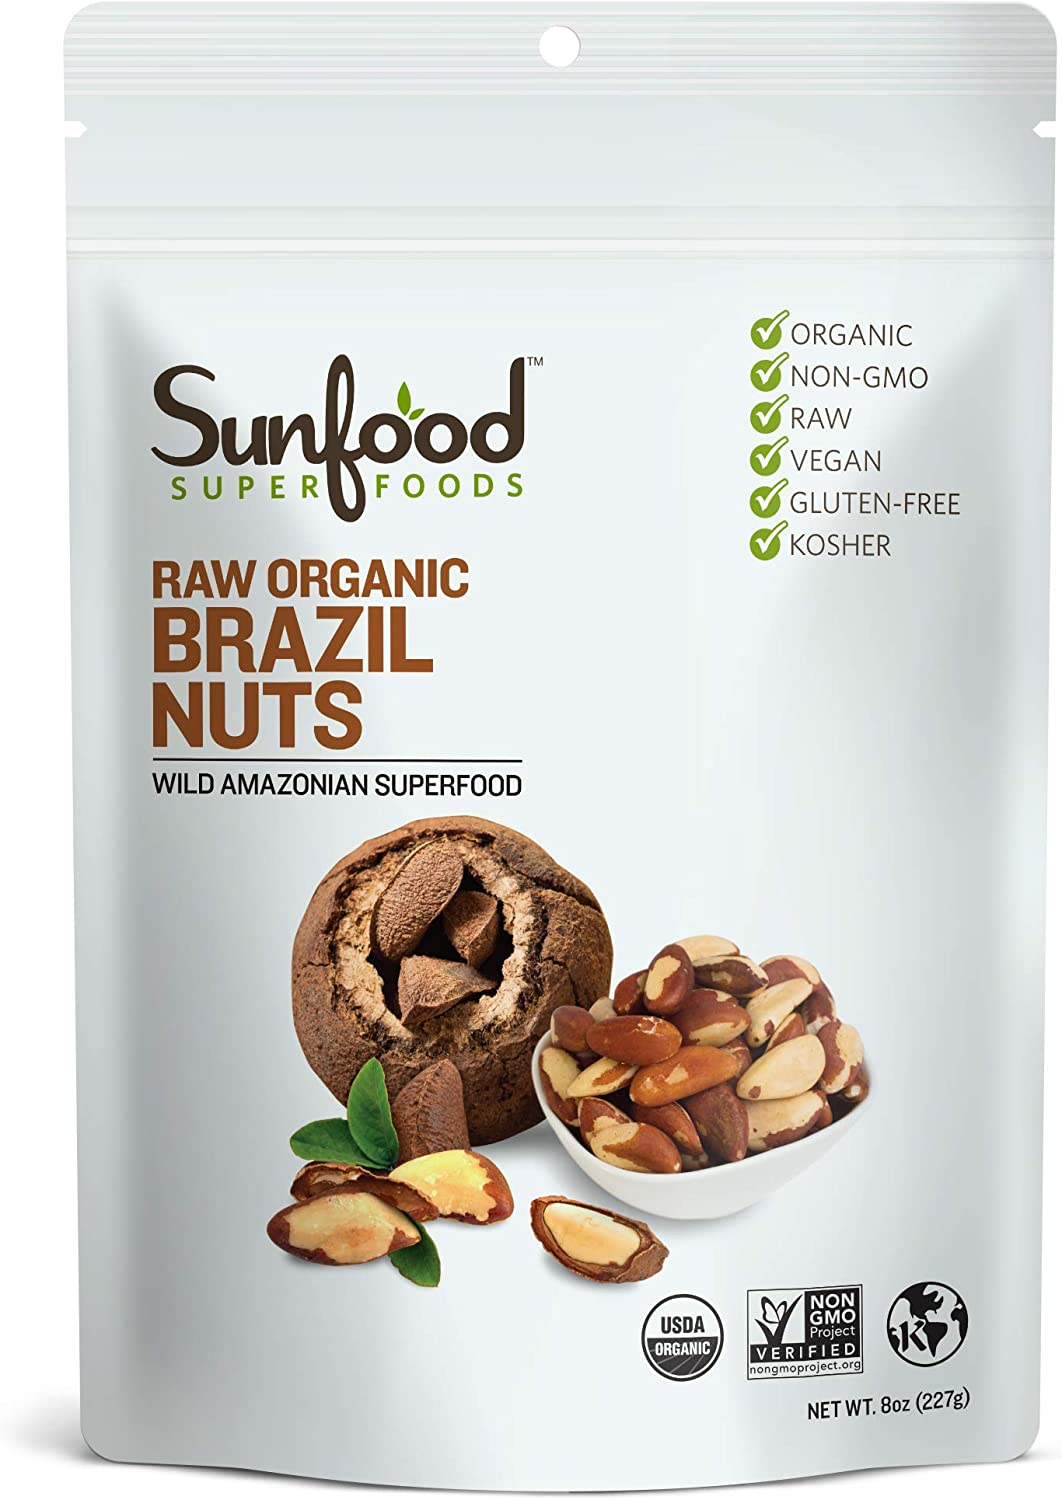 Sunfood Superfood Brazil Nuts - Raw Organic - Non GMO - Rich in Protein, Fiber, Healthy Fats - Low Temperature Dried to Preserve Nutrients - No Preservatives pr Additives 8 oz Bag